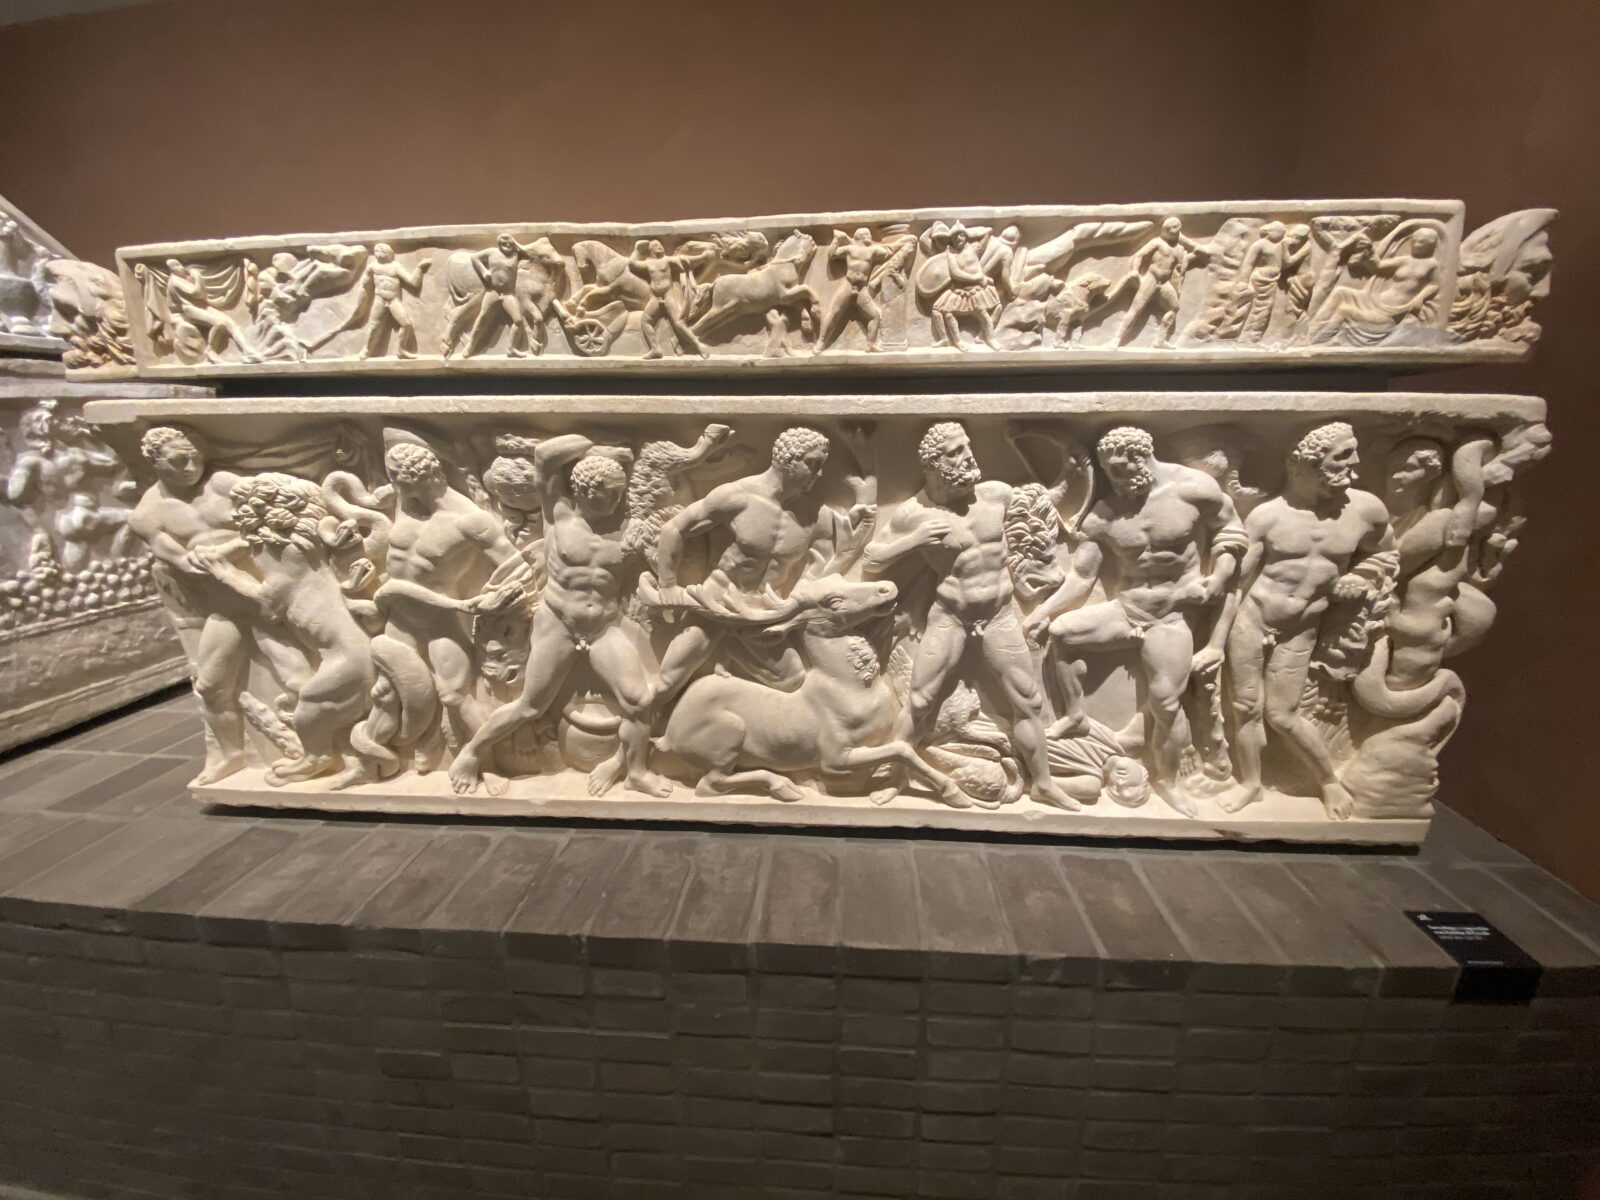 The Sarcophagus with the Labours of Hercules.